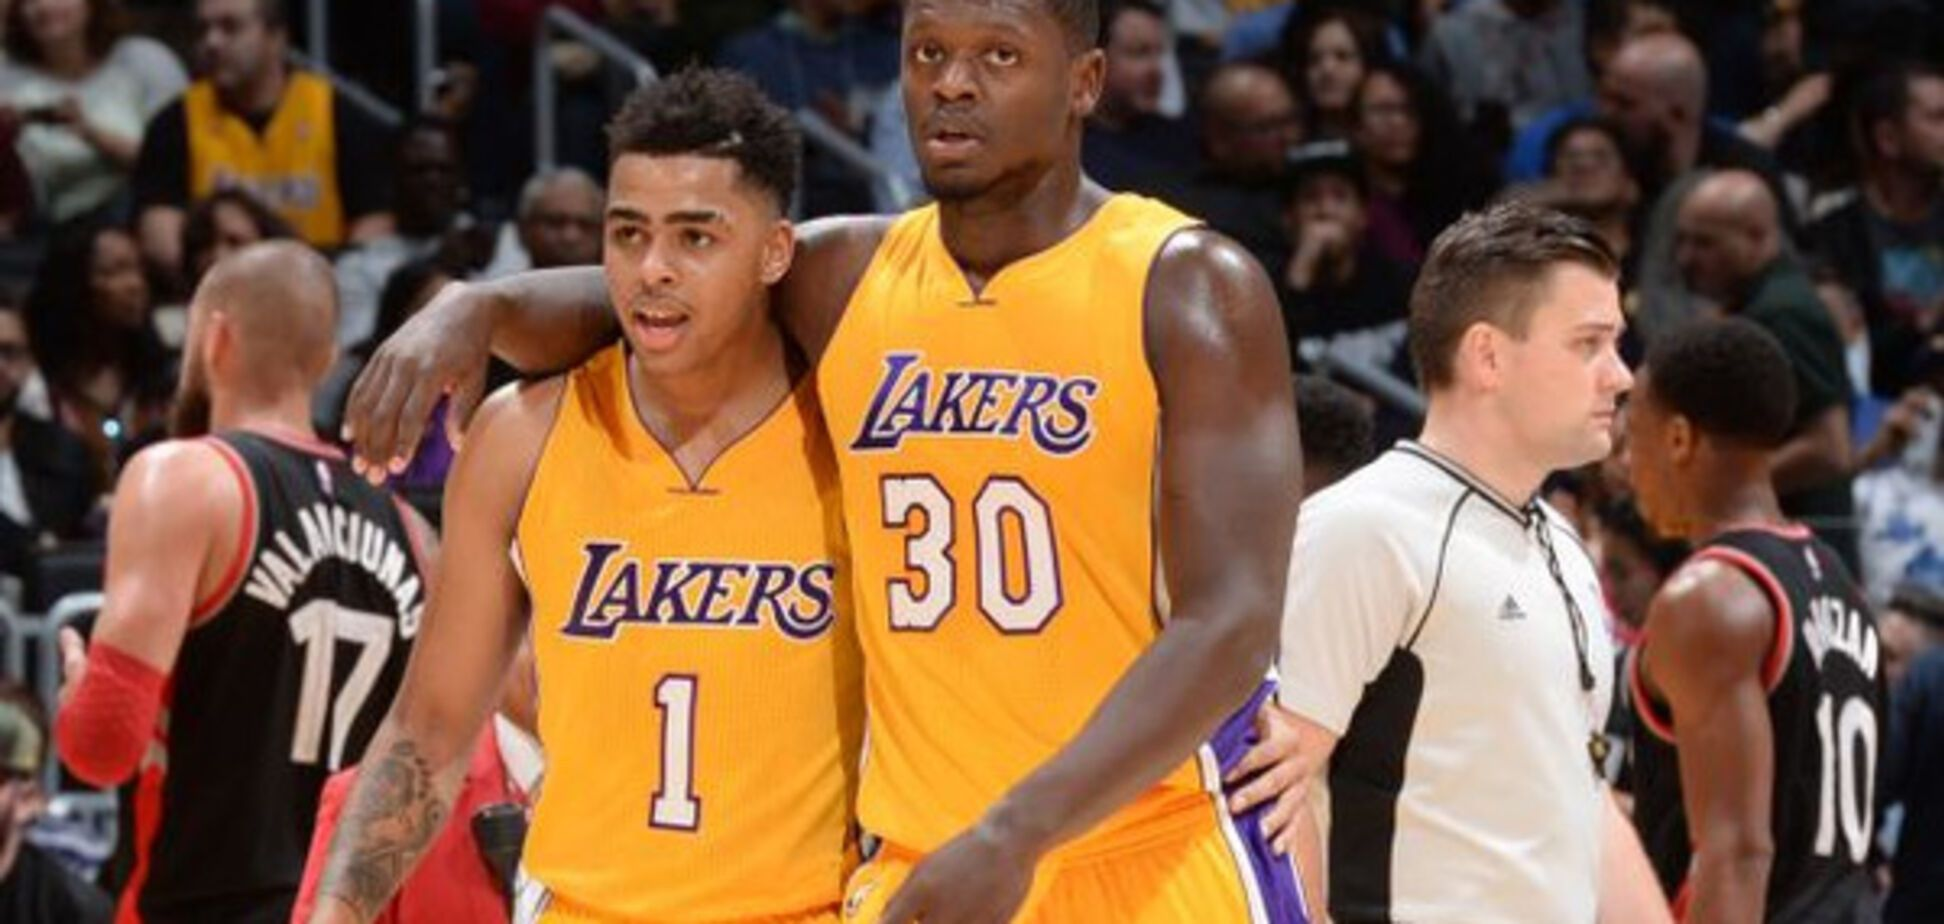 Julius Randle and D\u0027Angelo Russell